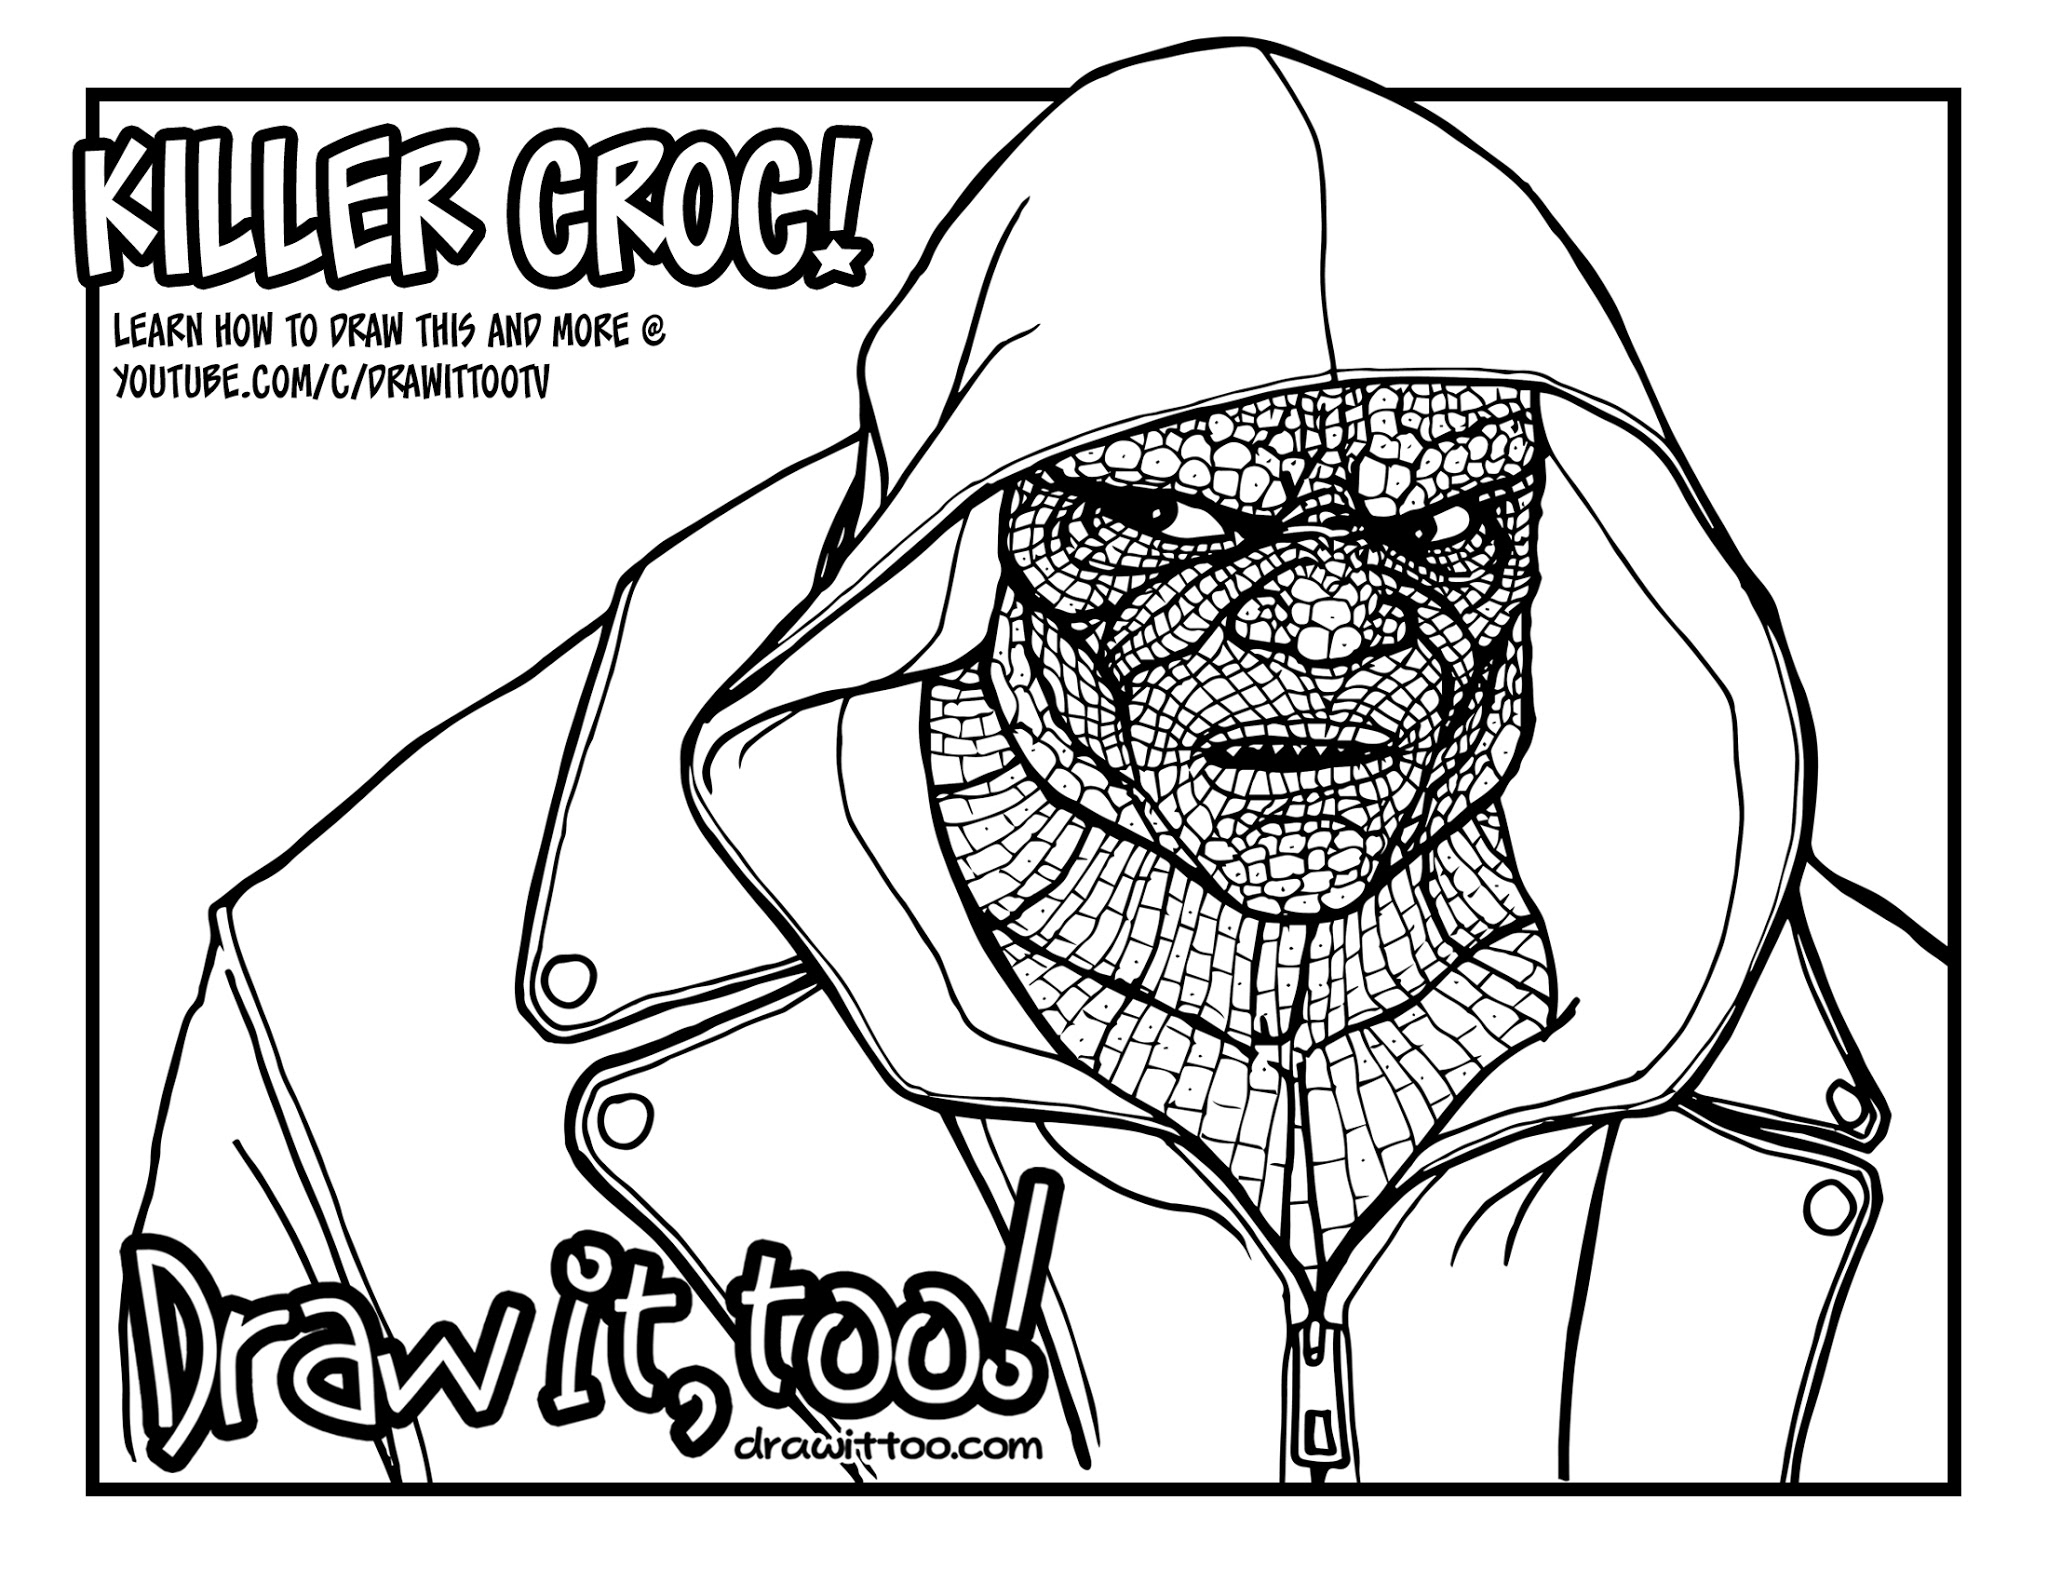 Crocodile hunter coloring pages ~ Crocodile Coloring Pages For Kids at GetDrawings.com ...